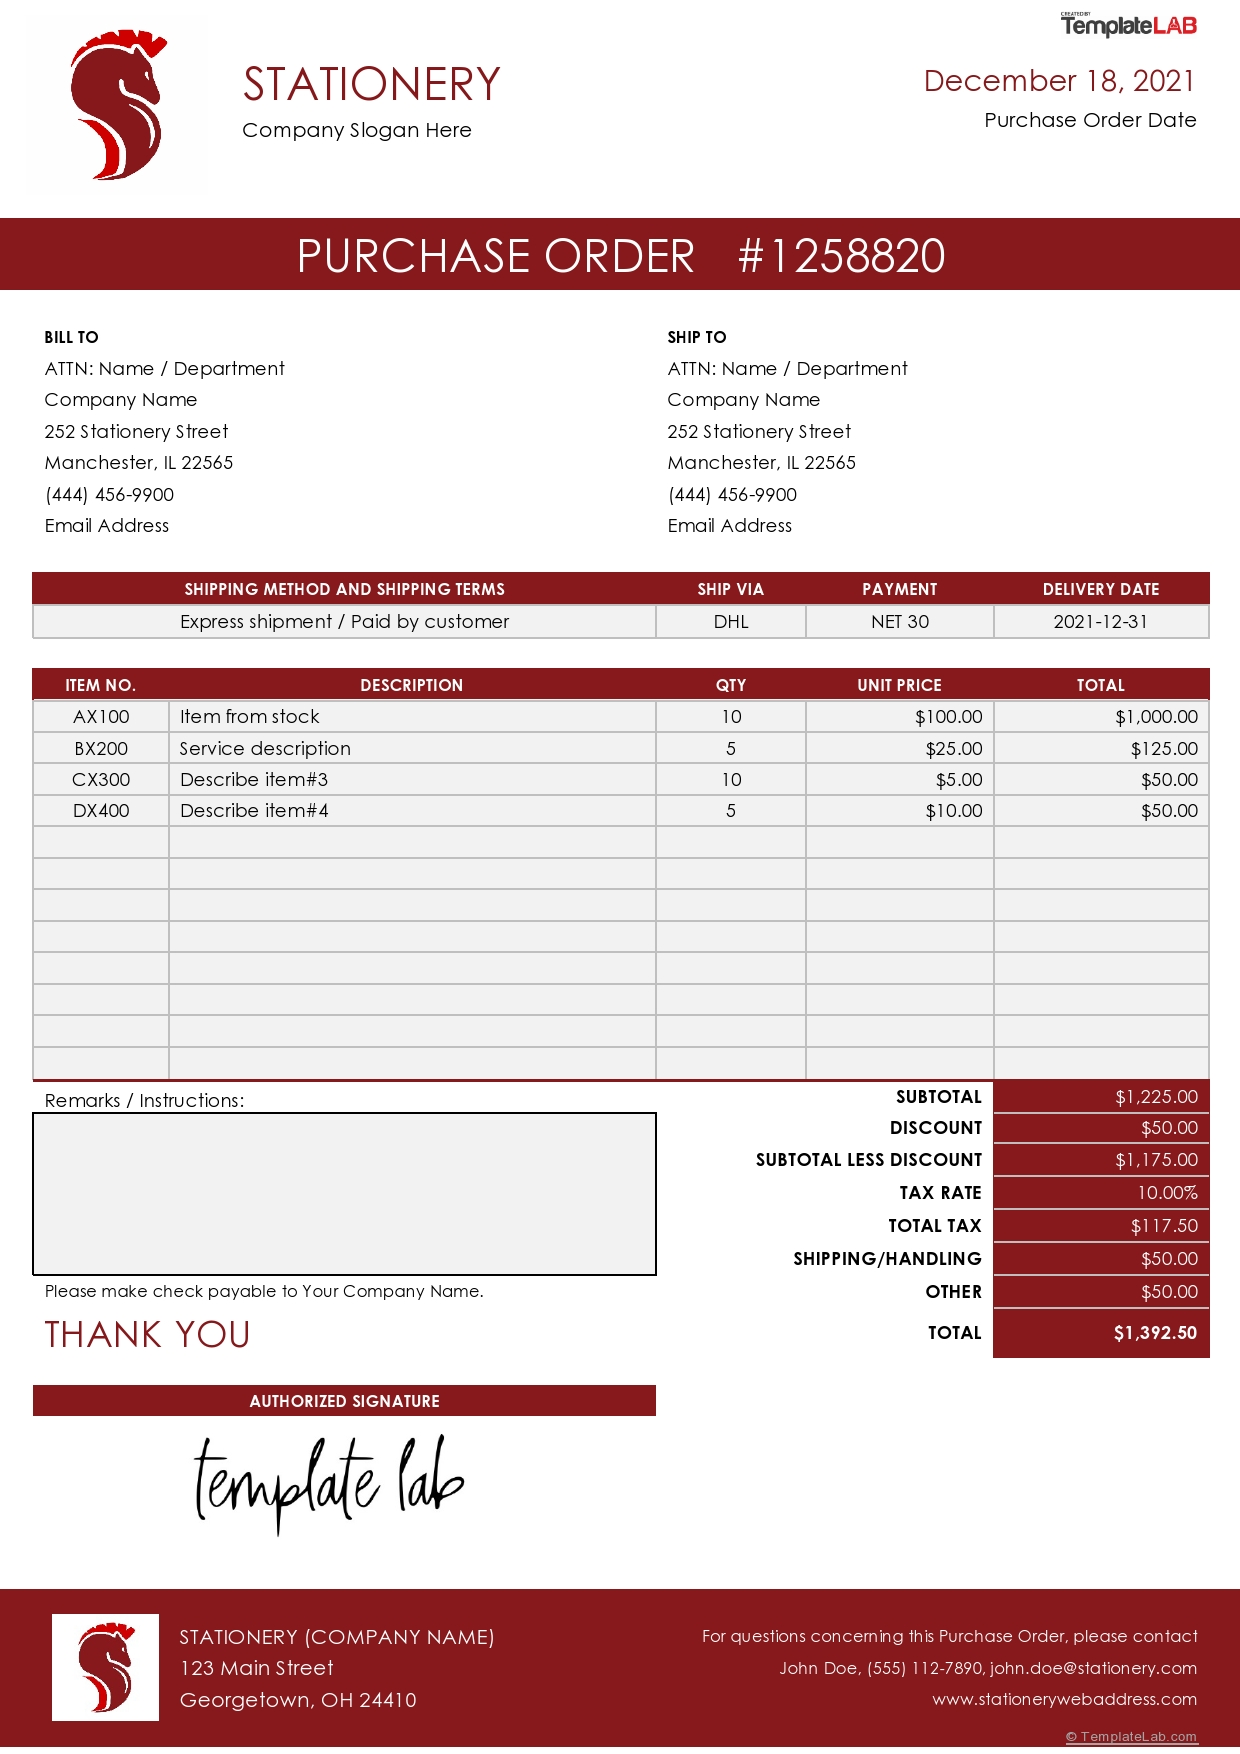 Free Stationery Purchase Order Template